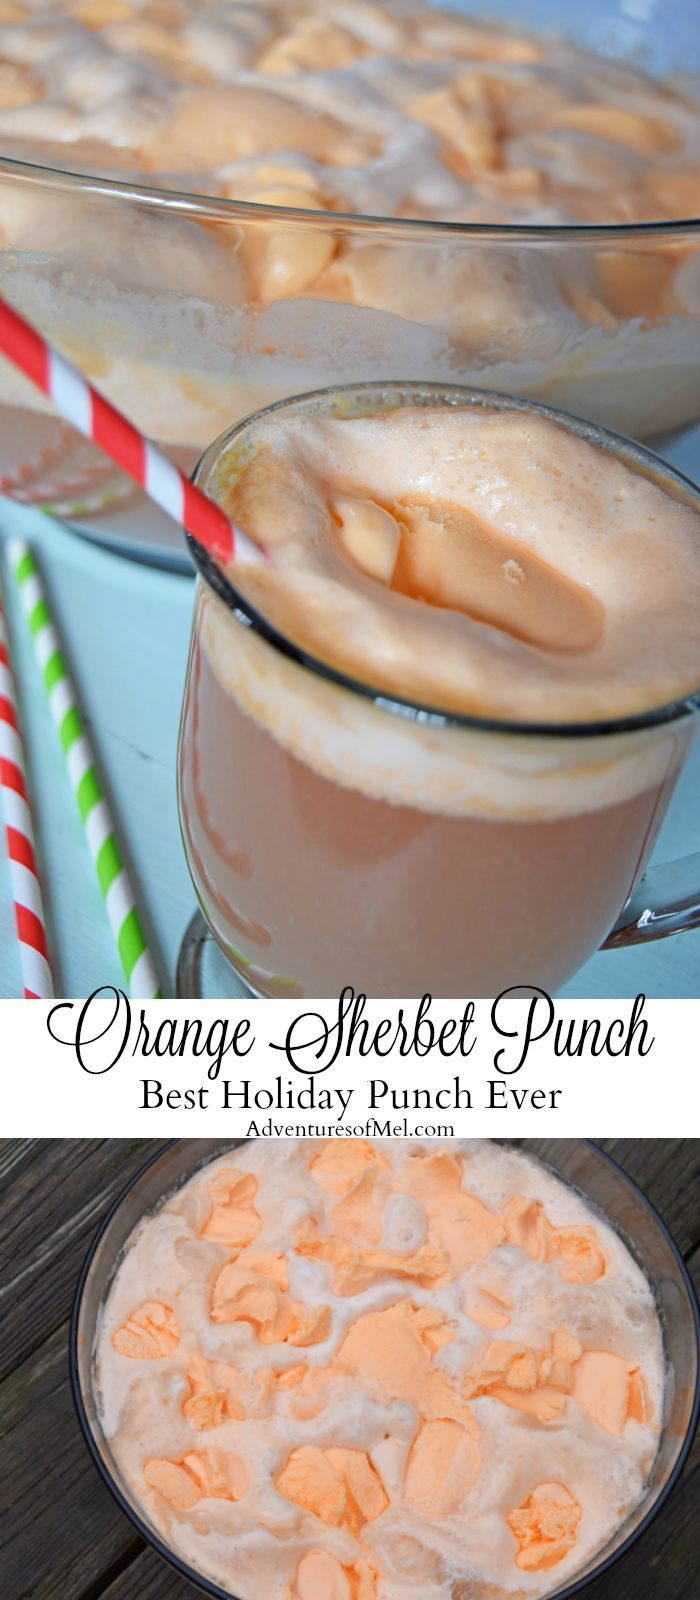 Inspired by Grandma's yearly tradition at Christmas time, orange sherbet punch is super easy to make and the best holiday punch ever. It's the one party drink that will have your guests asking for the recipe. Only 4 simple ingredients, and you've got a tasty holiday beverage!